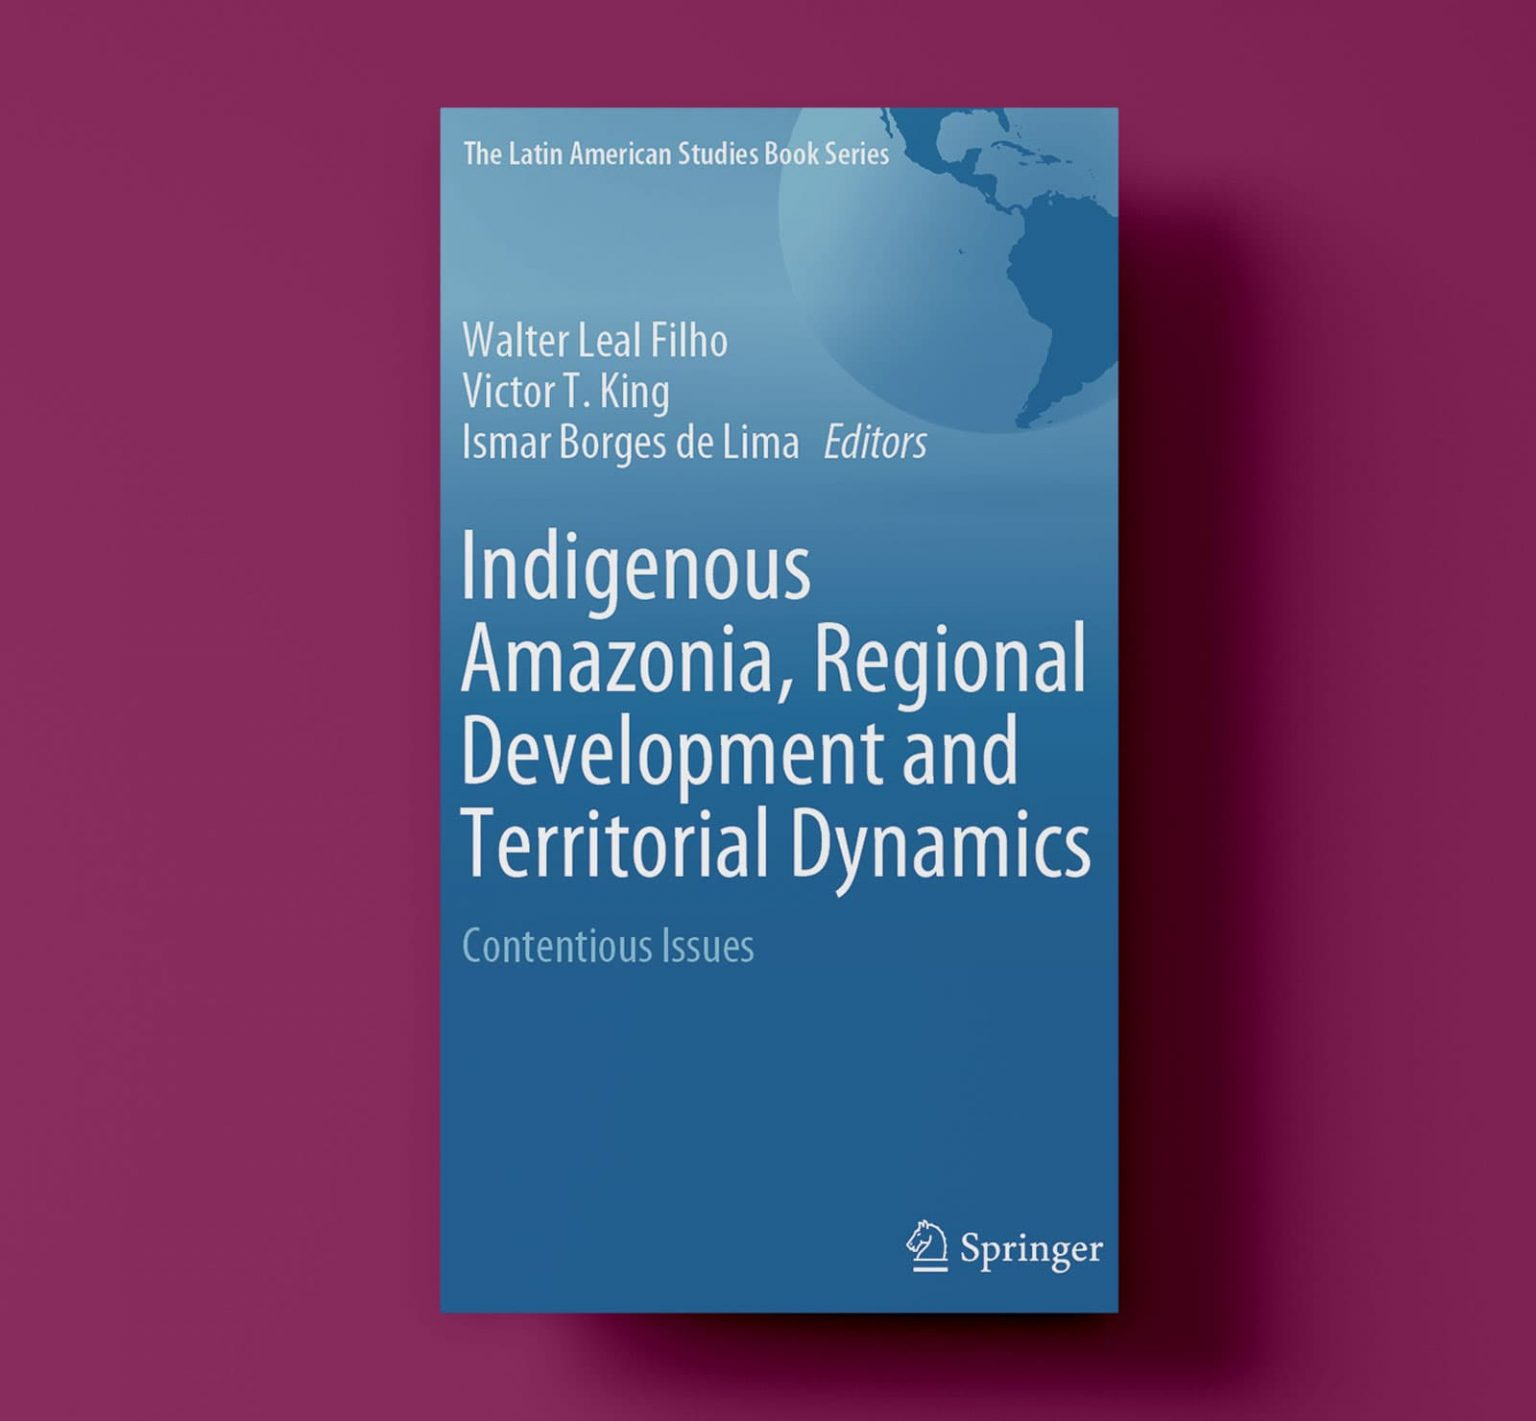 King Co-Edits Volume on Indigenous Amazonia